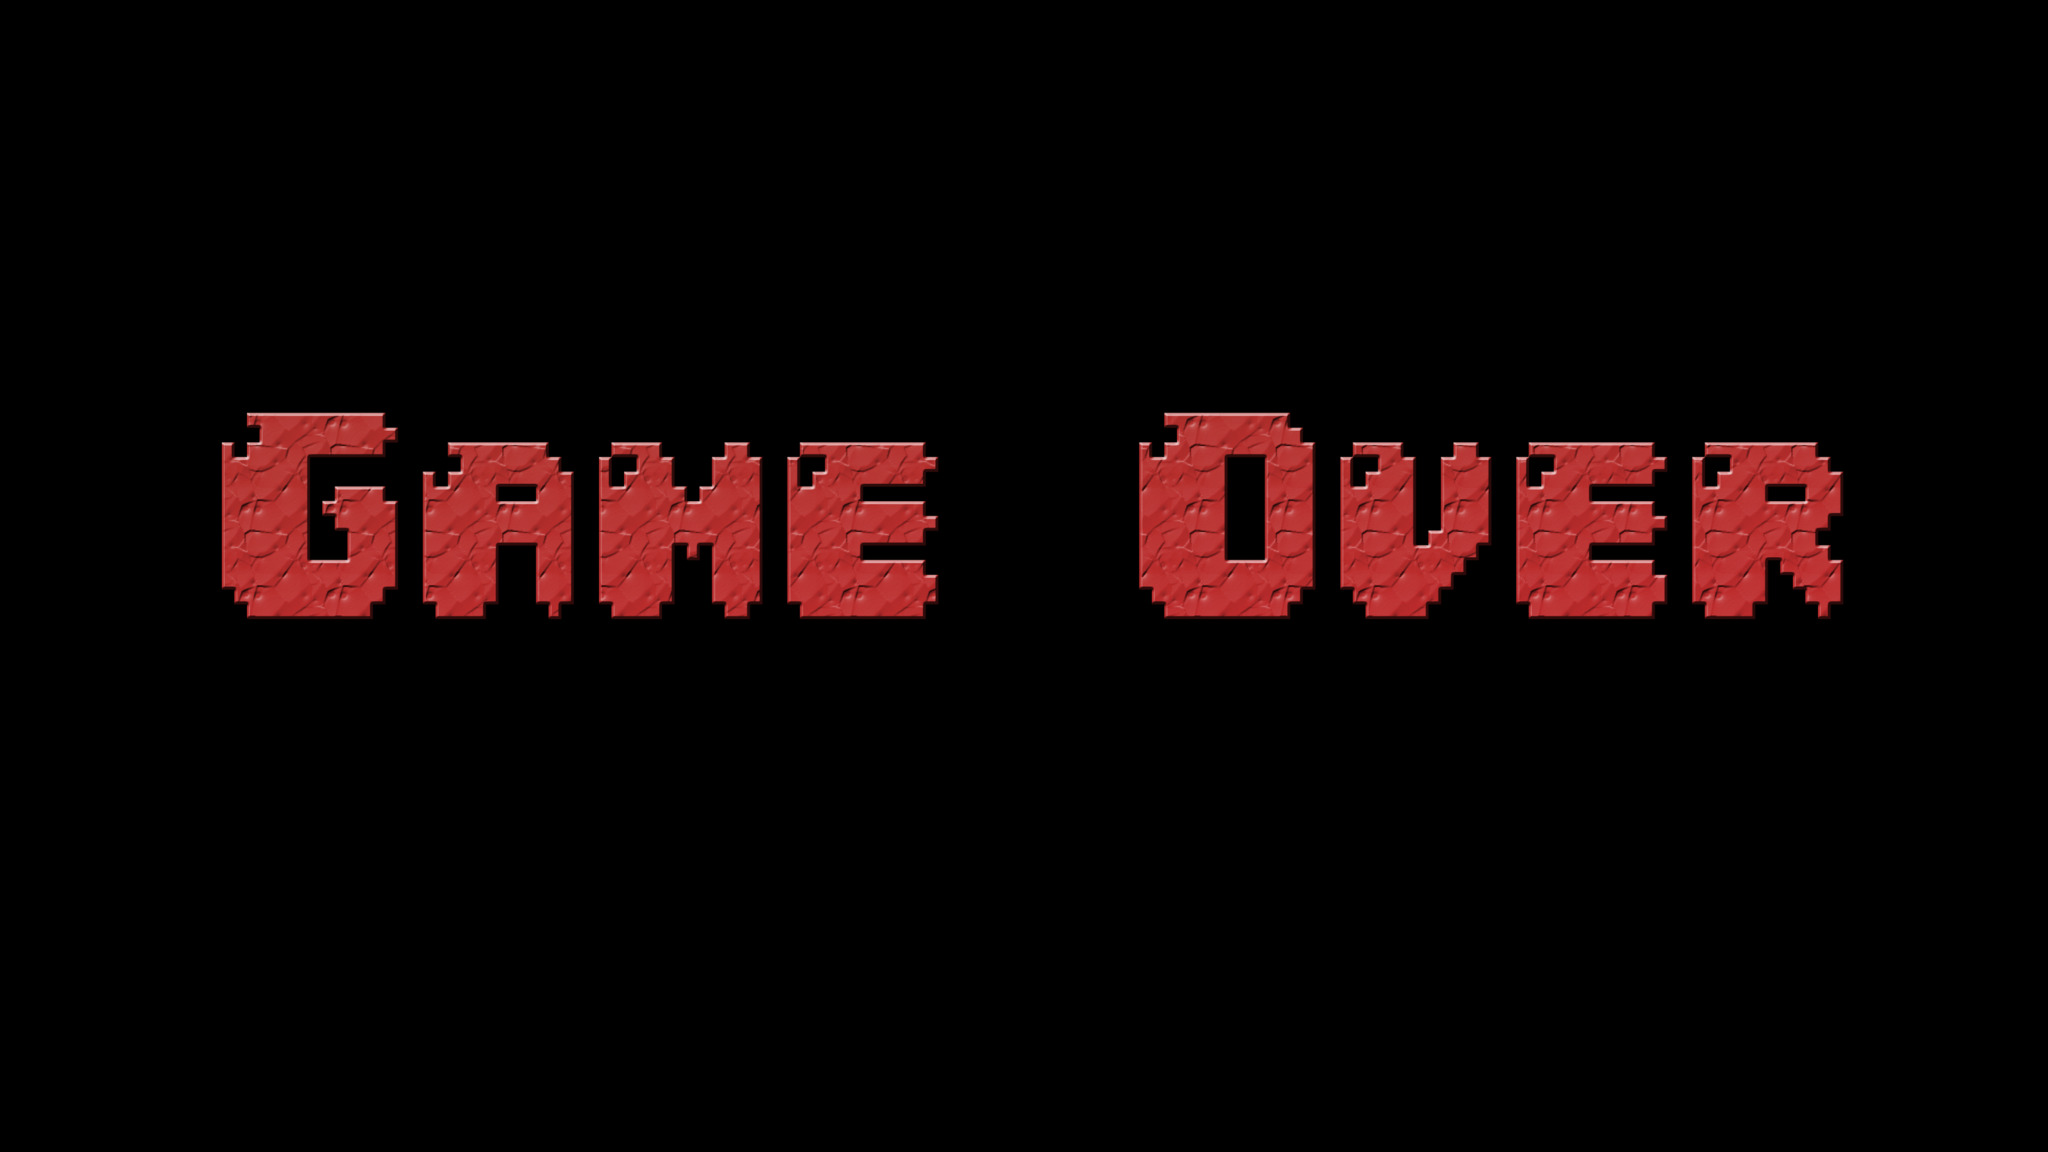 2048x1152 Game Over Typography 2048x1152 Resolution HD 4k